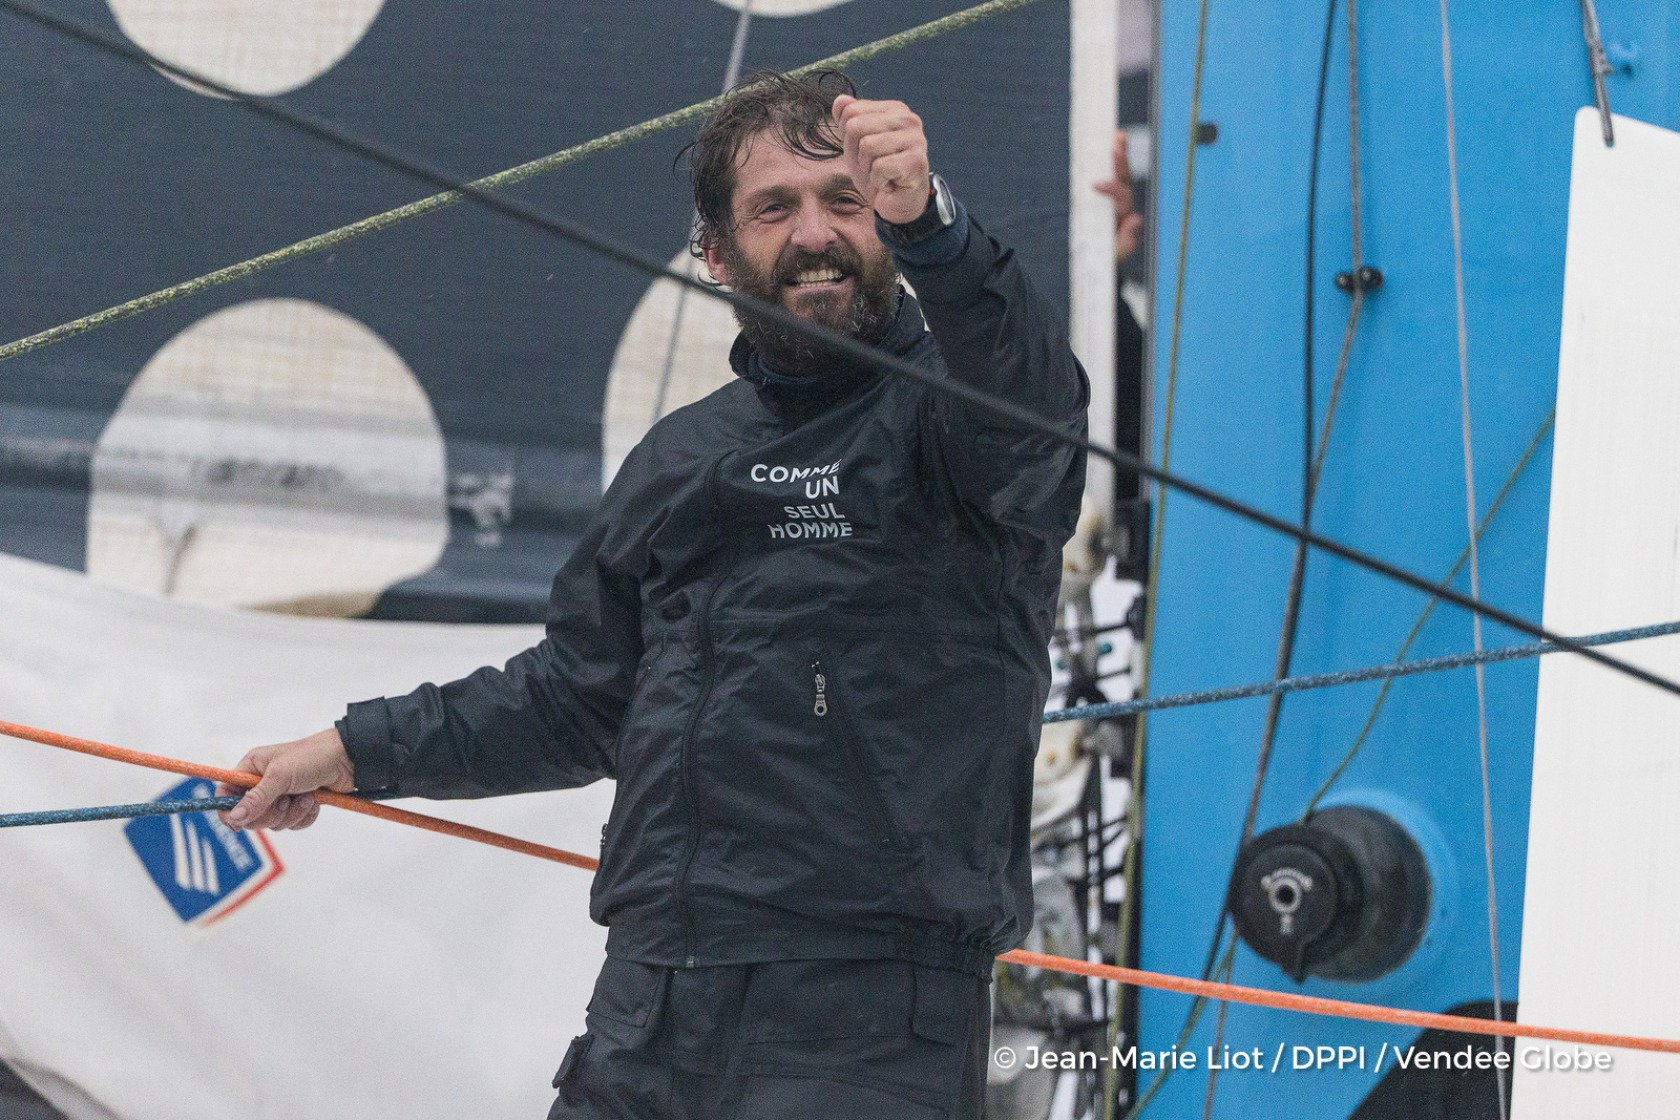 Finish arrival of Eric Bellion (FRA), skipper Comme Un Seul Homme, 9th of the sailing circumnavigation solo race Vendee Globe, in Les Sables d'Olonne, France, on February 13th, 2017 - Photo Jean-Marie Liot / DPPI / Vendee Globe